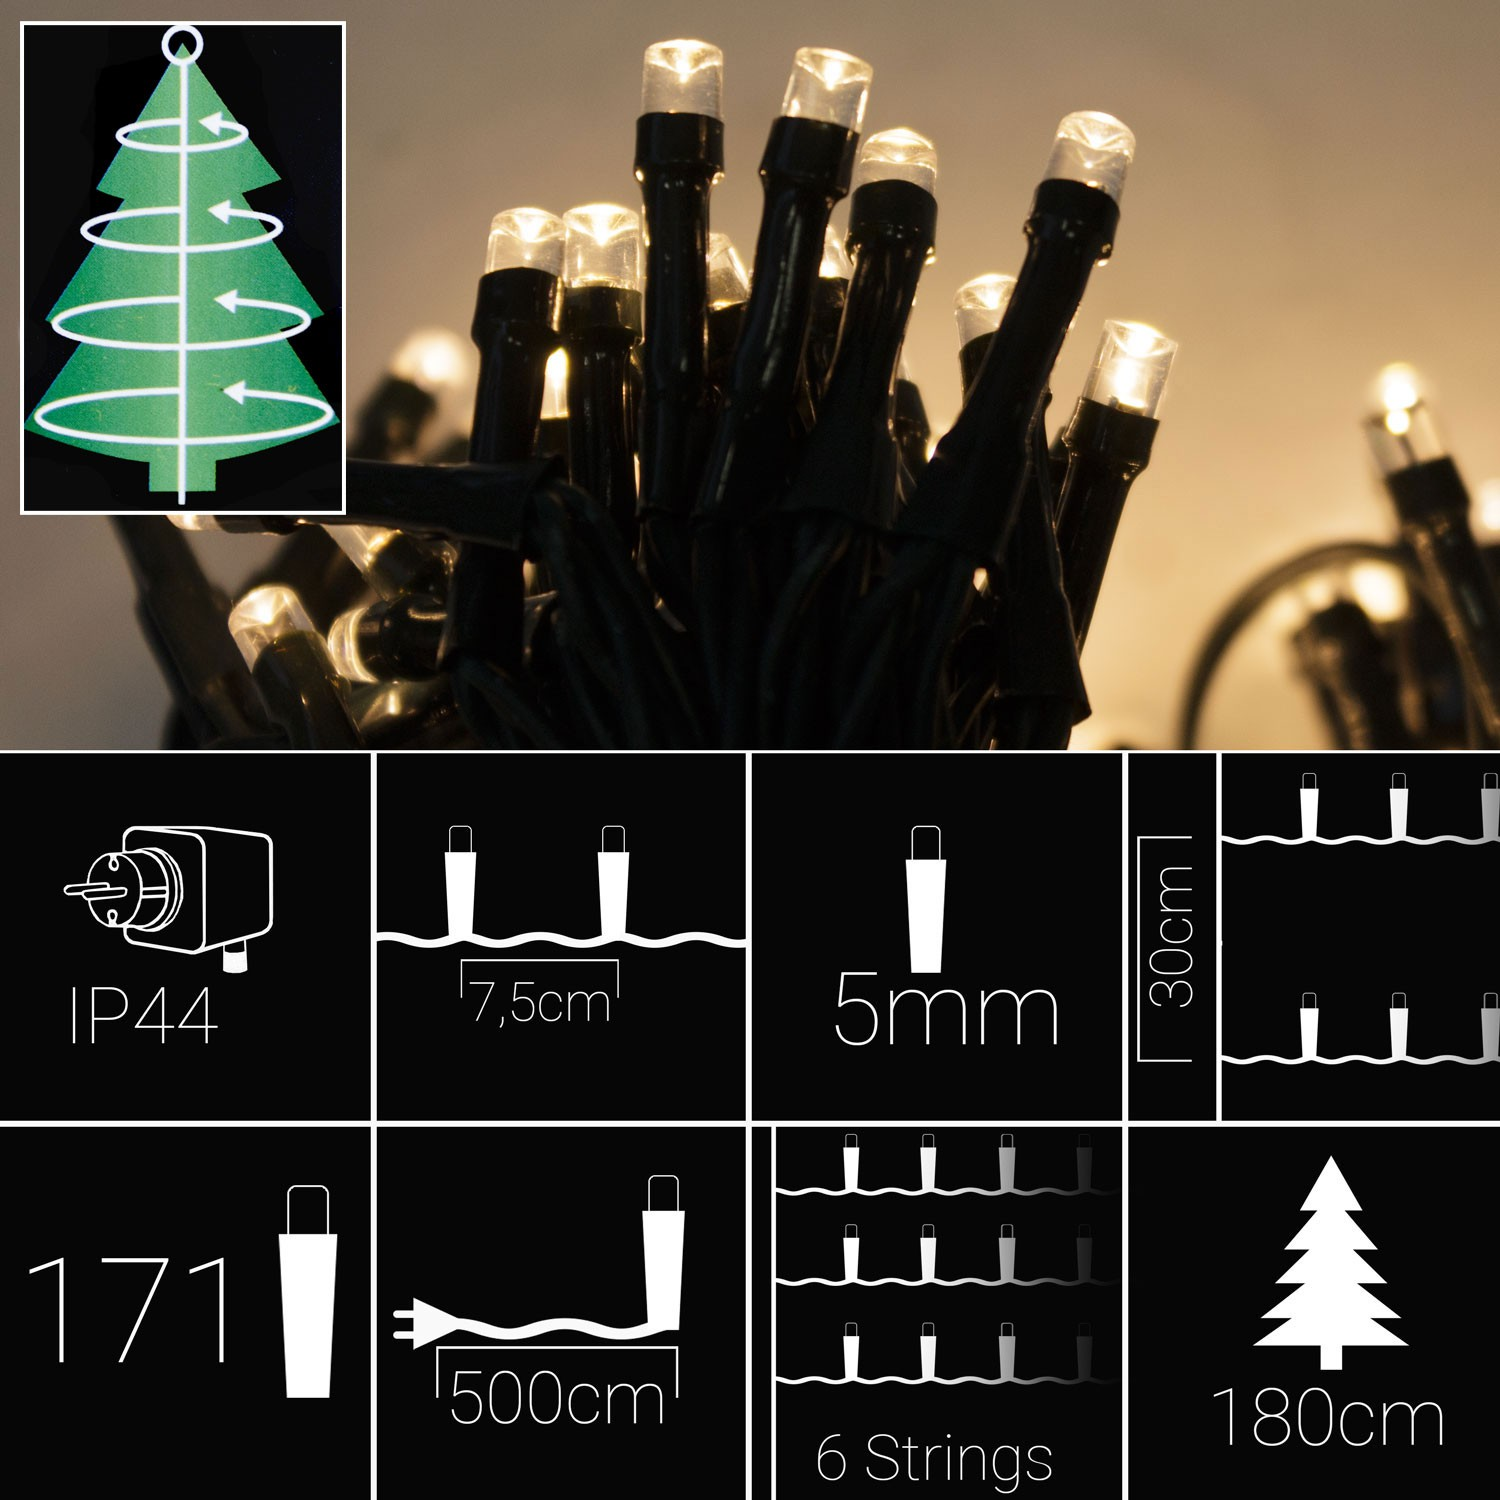 led weihnachtsbaum lichterkette f r christb ume bis 210cm. Black Bedroom Furniture Sets. Home Design Ideas